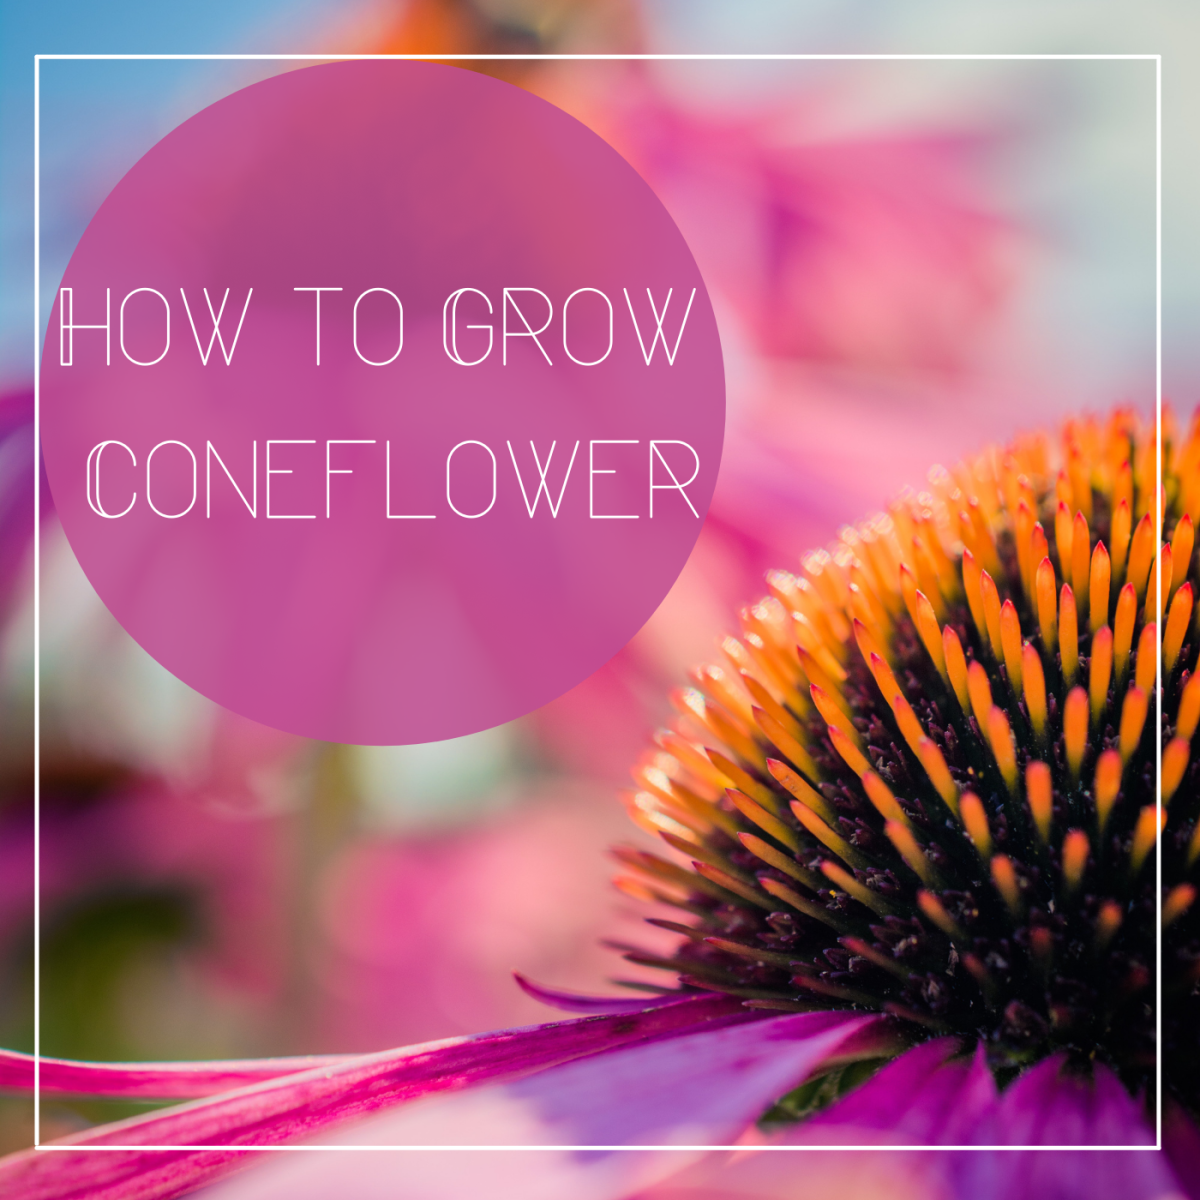 Learn how to grow coneflowers to add a pop of color to your garden.